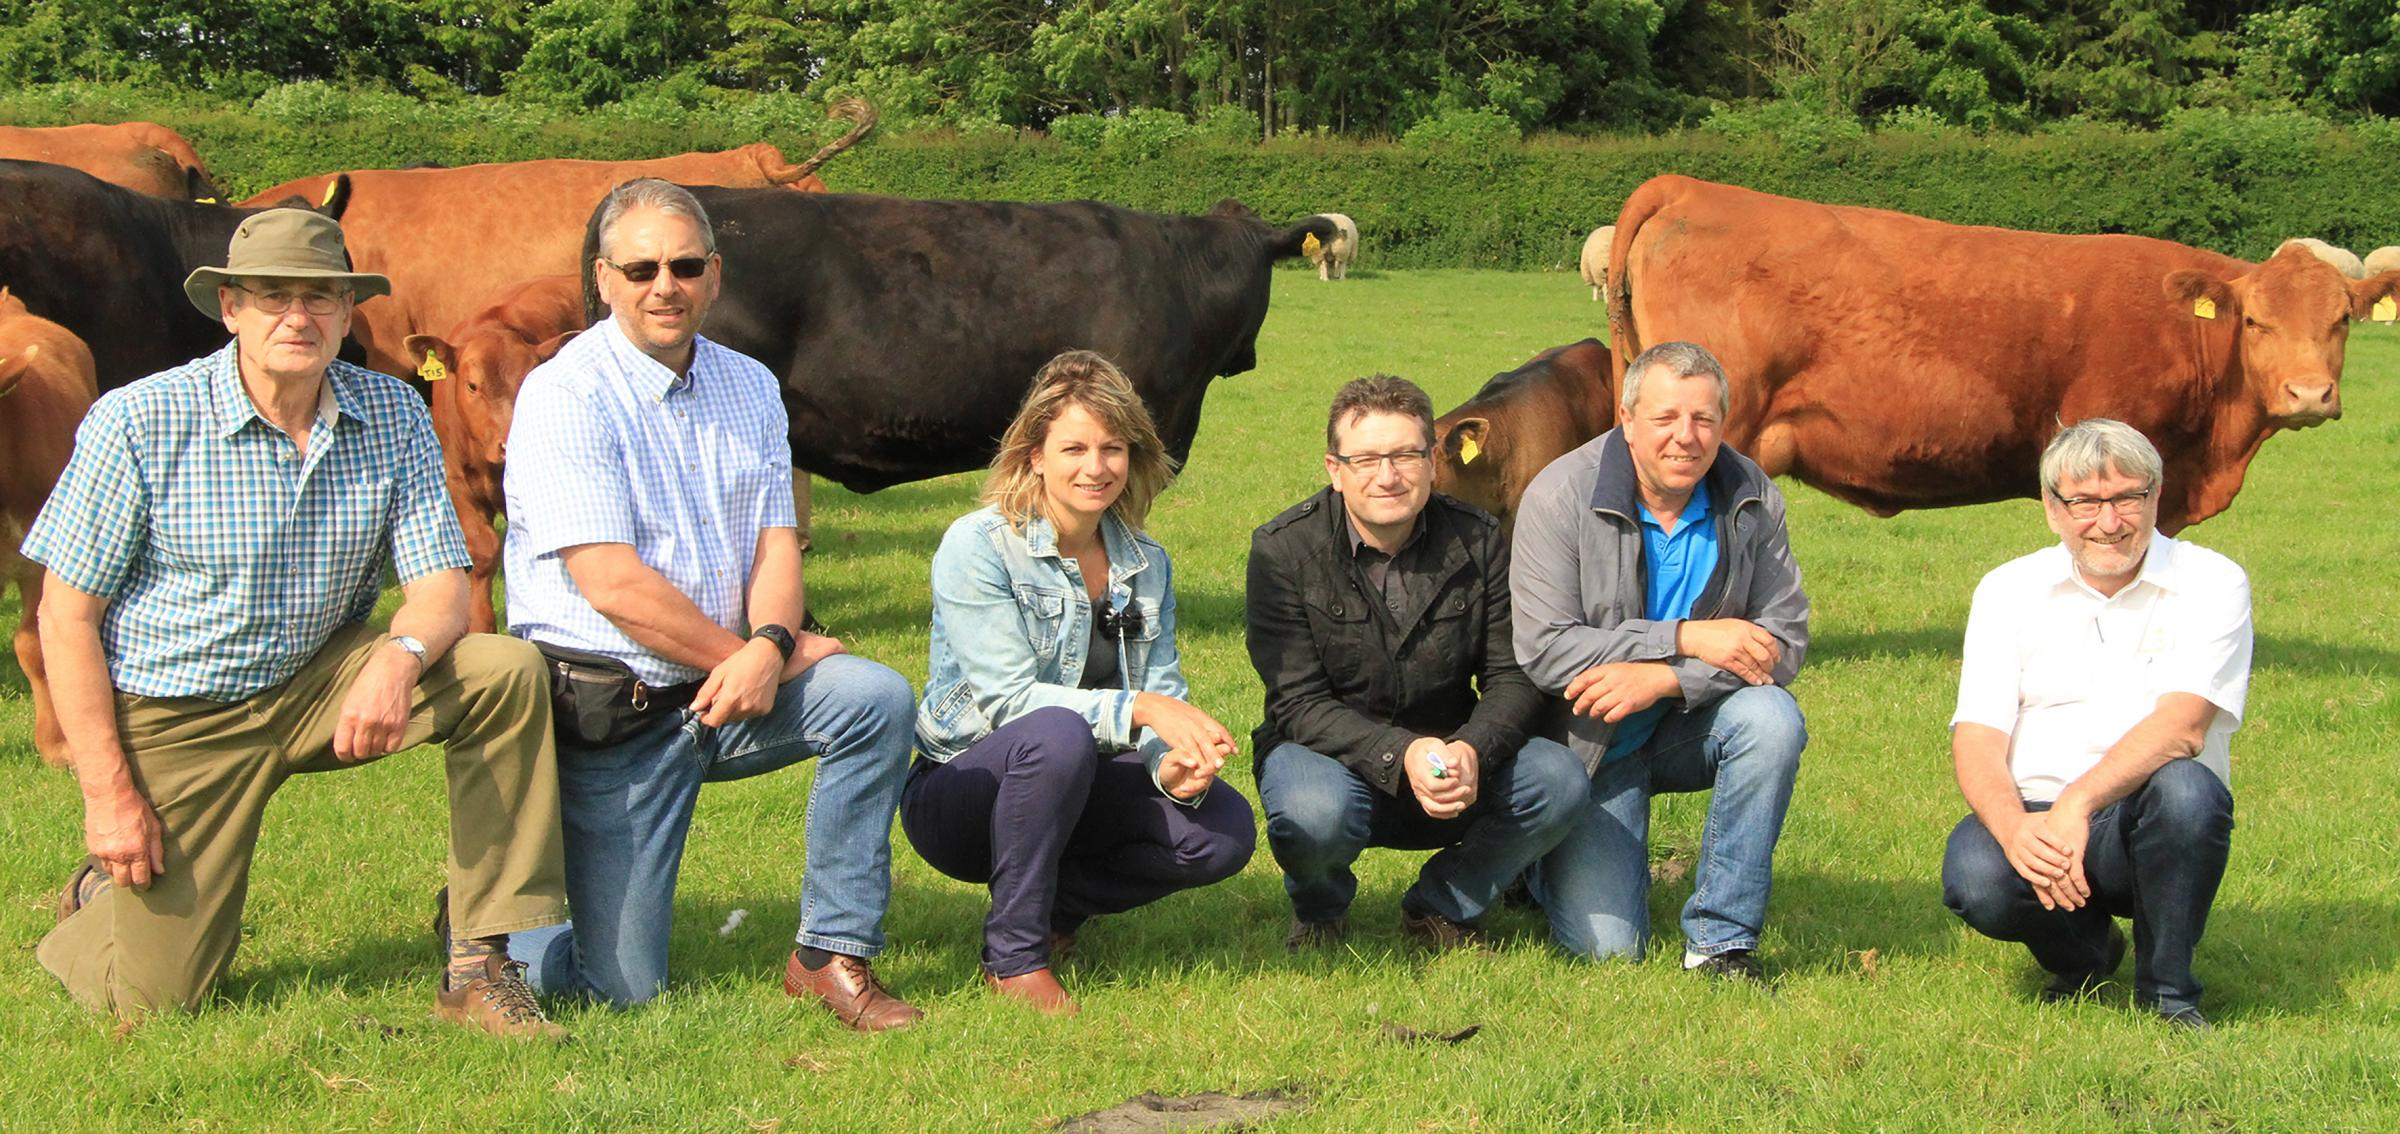 French representatives for Bovinext visited Stabiliser Cattle Company's headquarters and JSR's Givendale Stabiliser herd to finalise an initial five5-year agreement to bring UK Stabiliser genetics into France through semen, embryos and live cattle exp